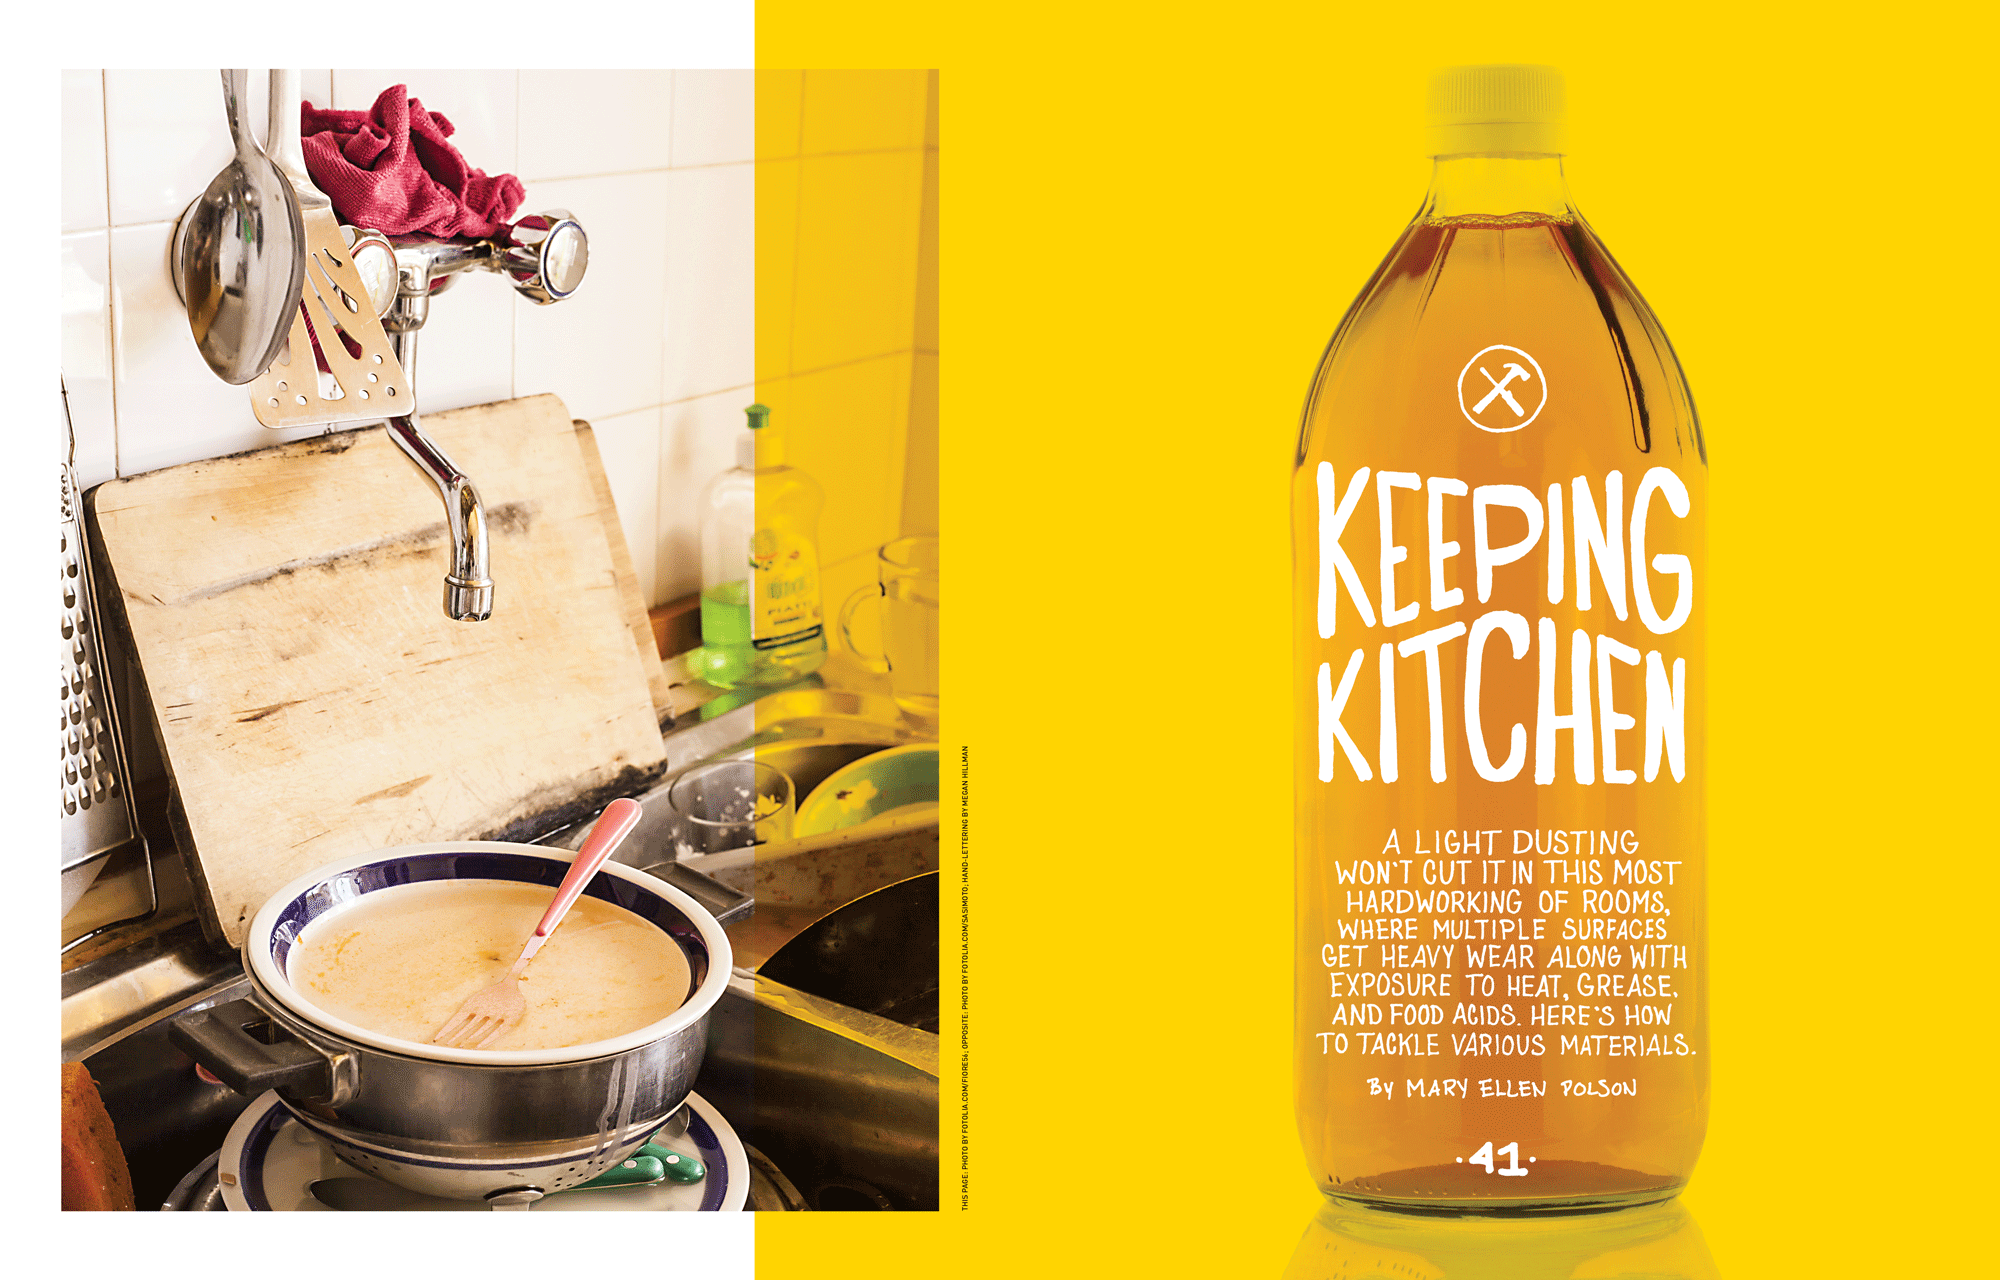 Keeping Kitchen by Megan Hillman